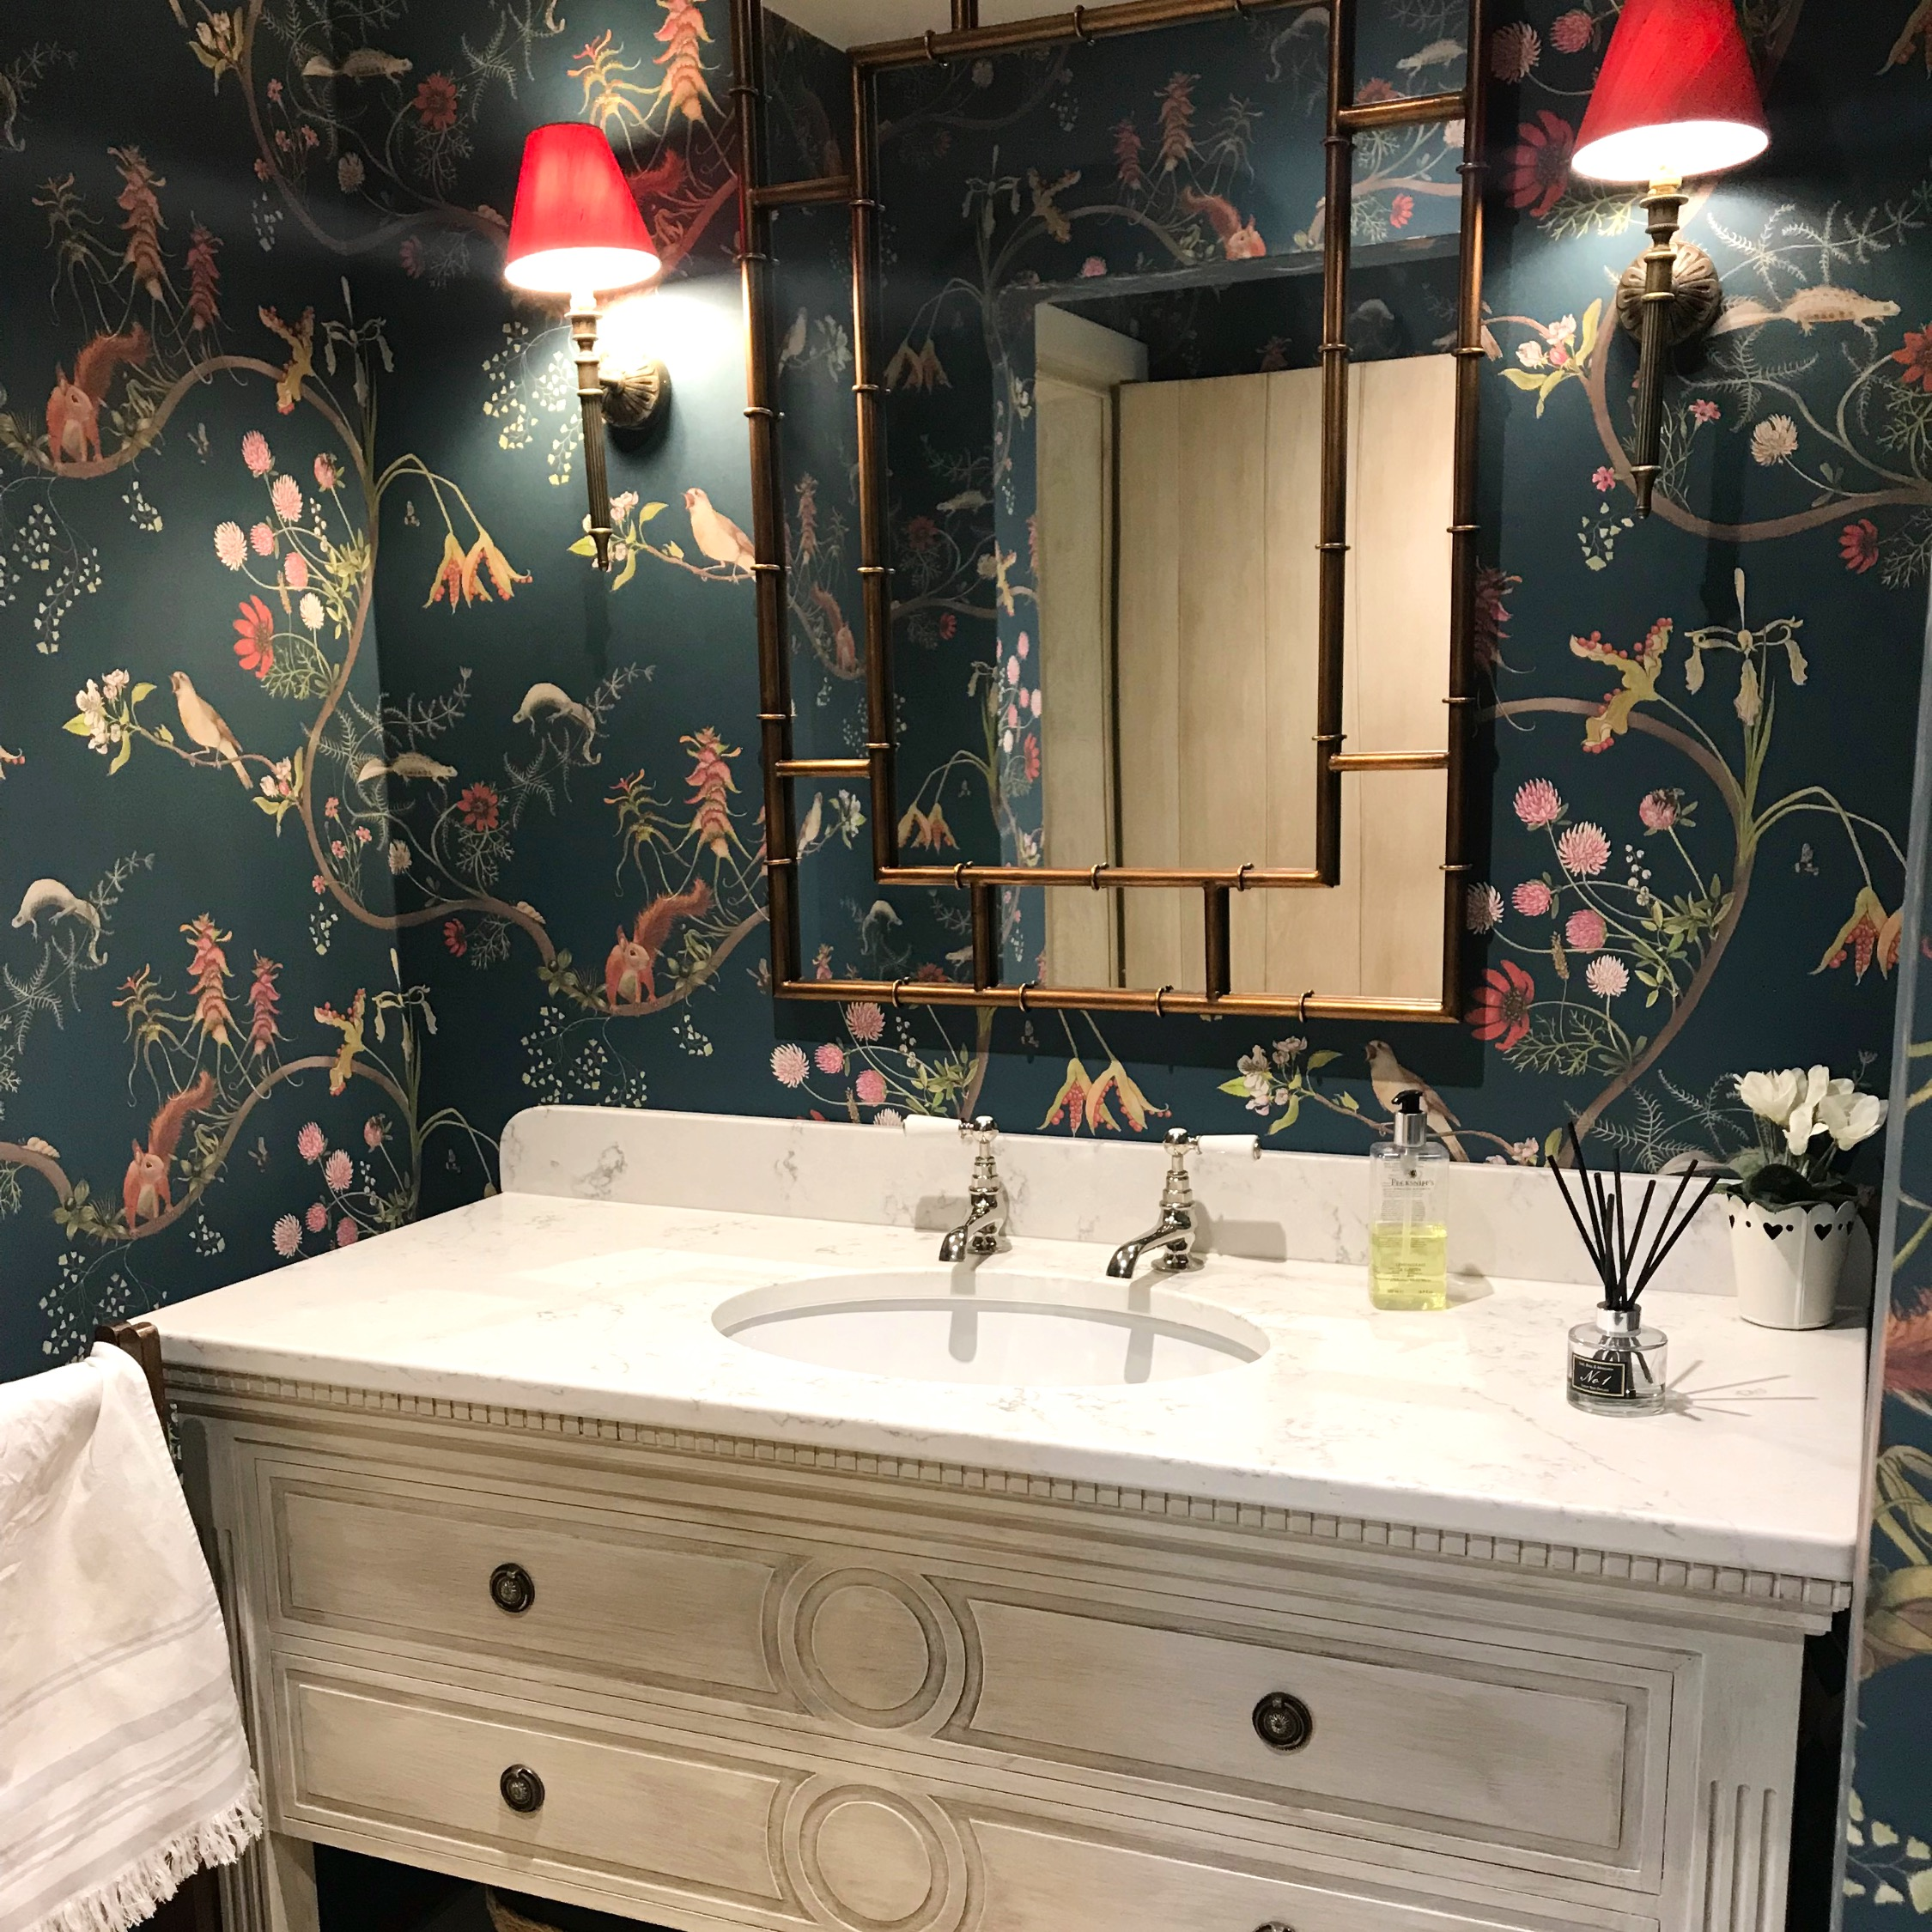 Wallpapered Cloakroom Bespoke Joinery